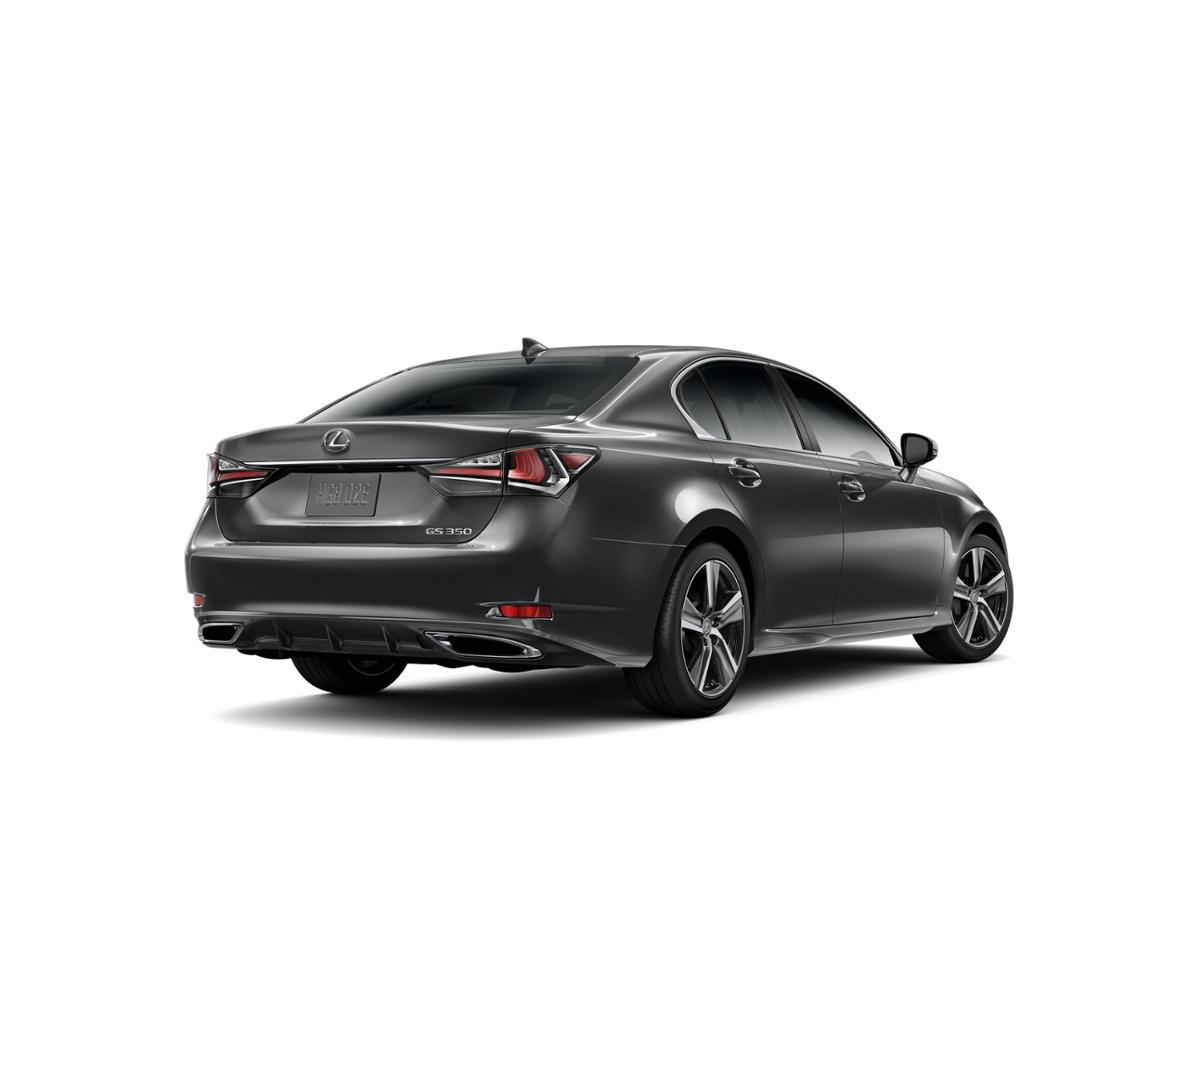 Lexus Gs For Sale: 2018 Smoky Granite Mica Lexus GS 350 For Sale At Ray